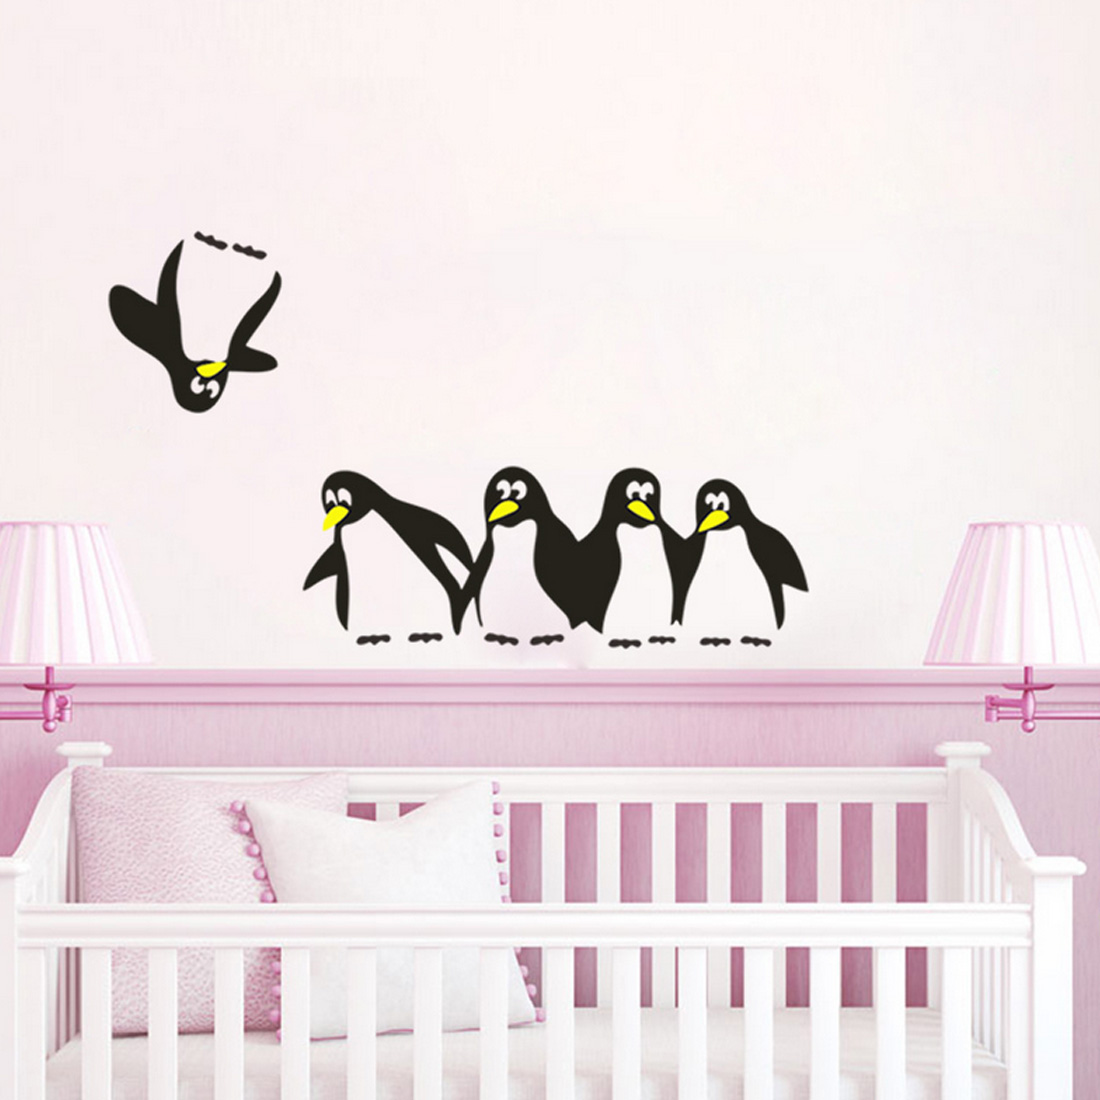 Funny Cute Penguin Kitchen Fridge Sticker 1PC DIY Decals Dining Room Kitchen Decorative Wall Stickers Home